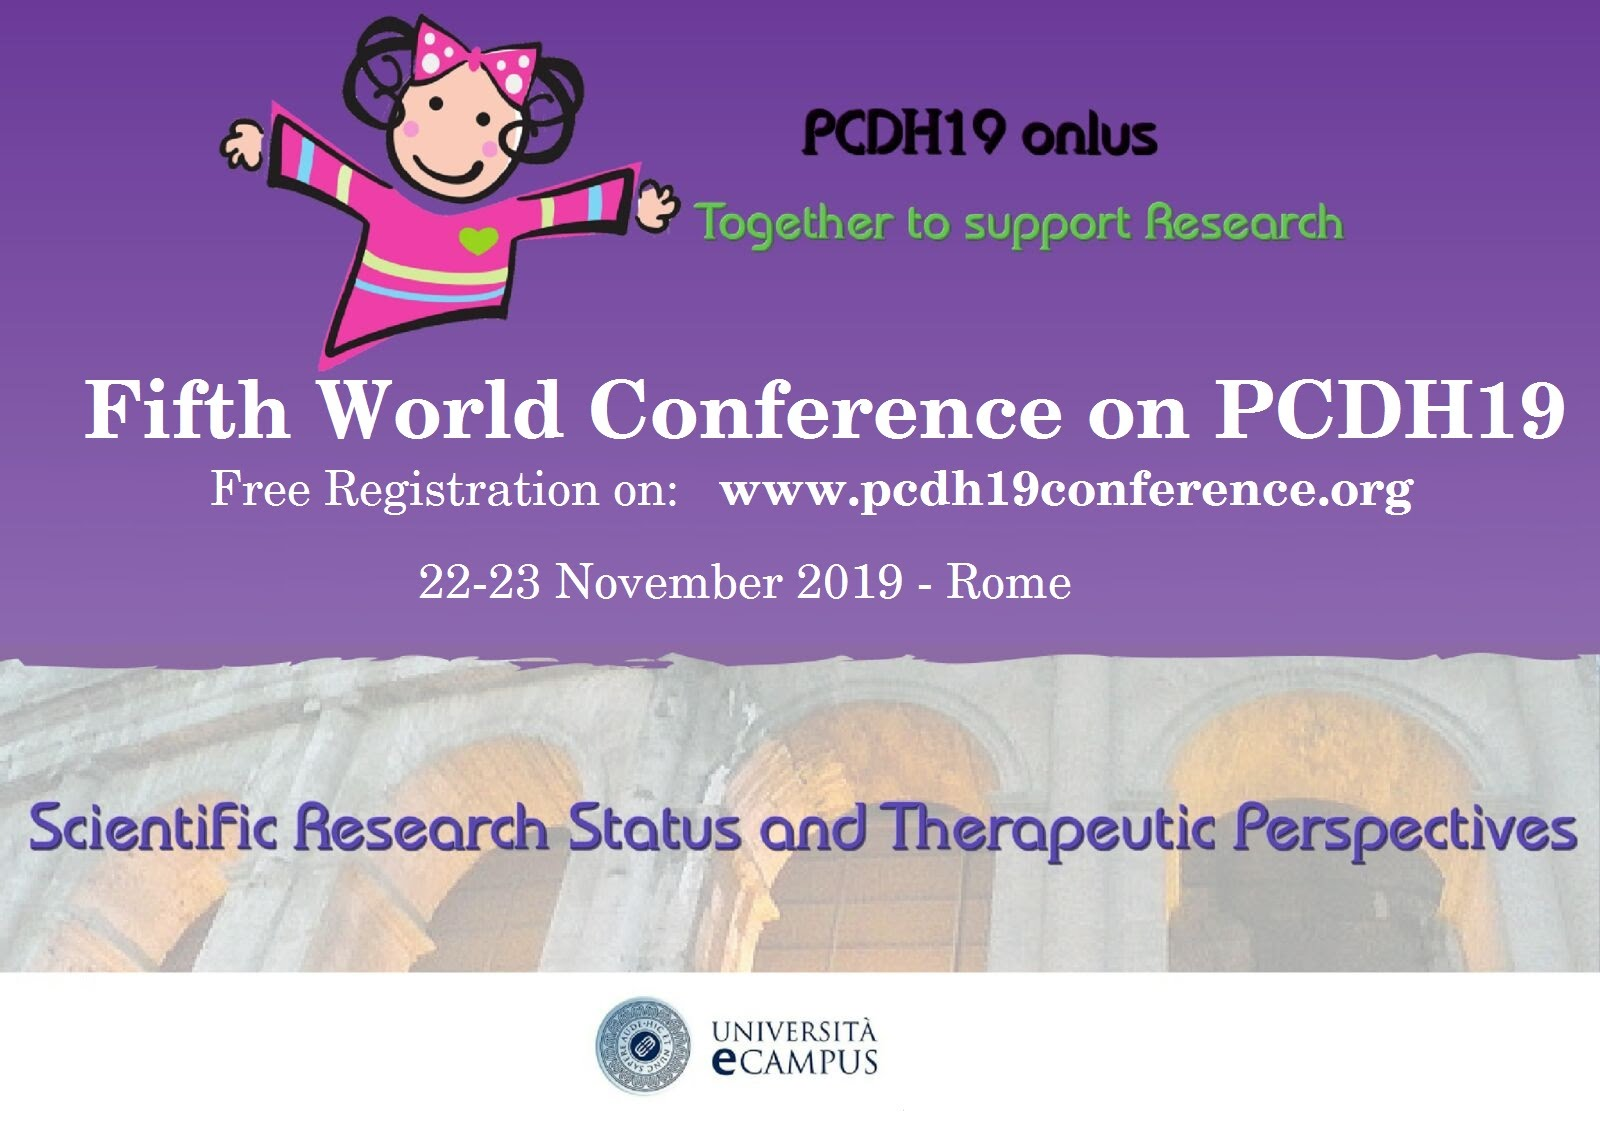 World Conference on PCDH19 - fifth edition